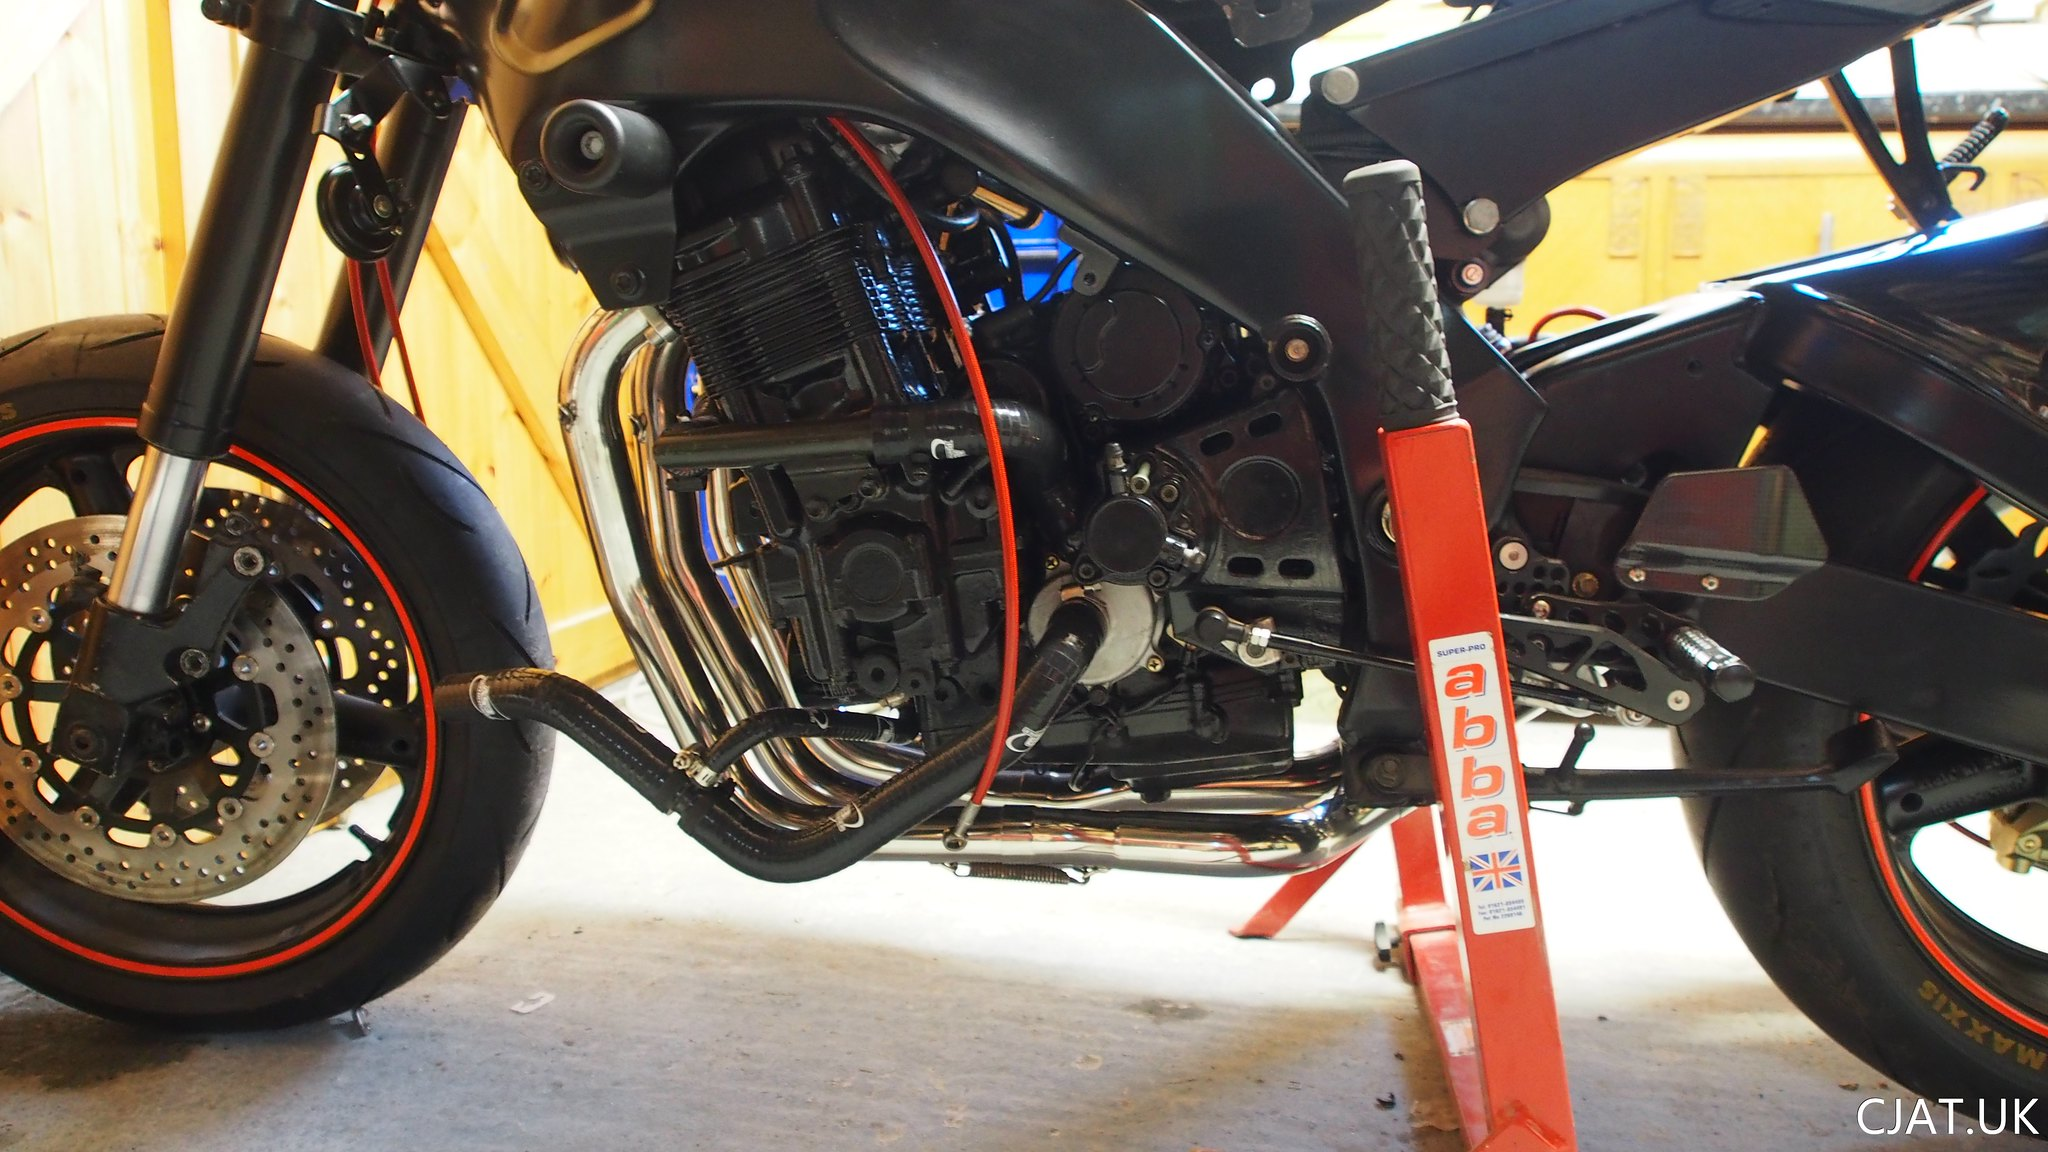 Suzuki RF900 StreetFighter parts, cooling hoses